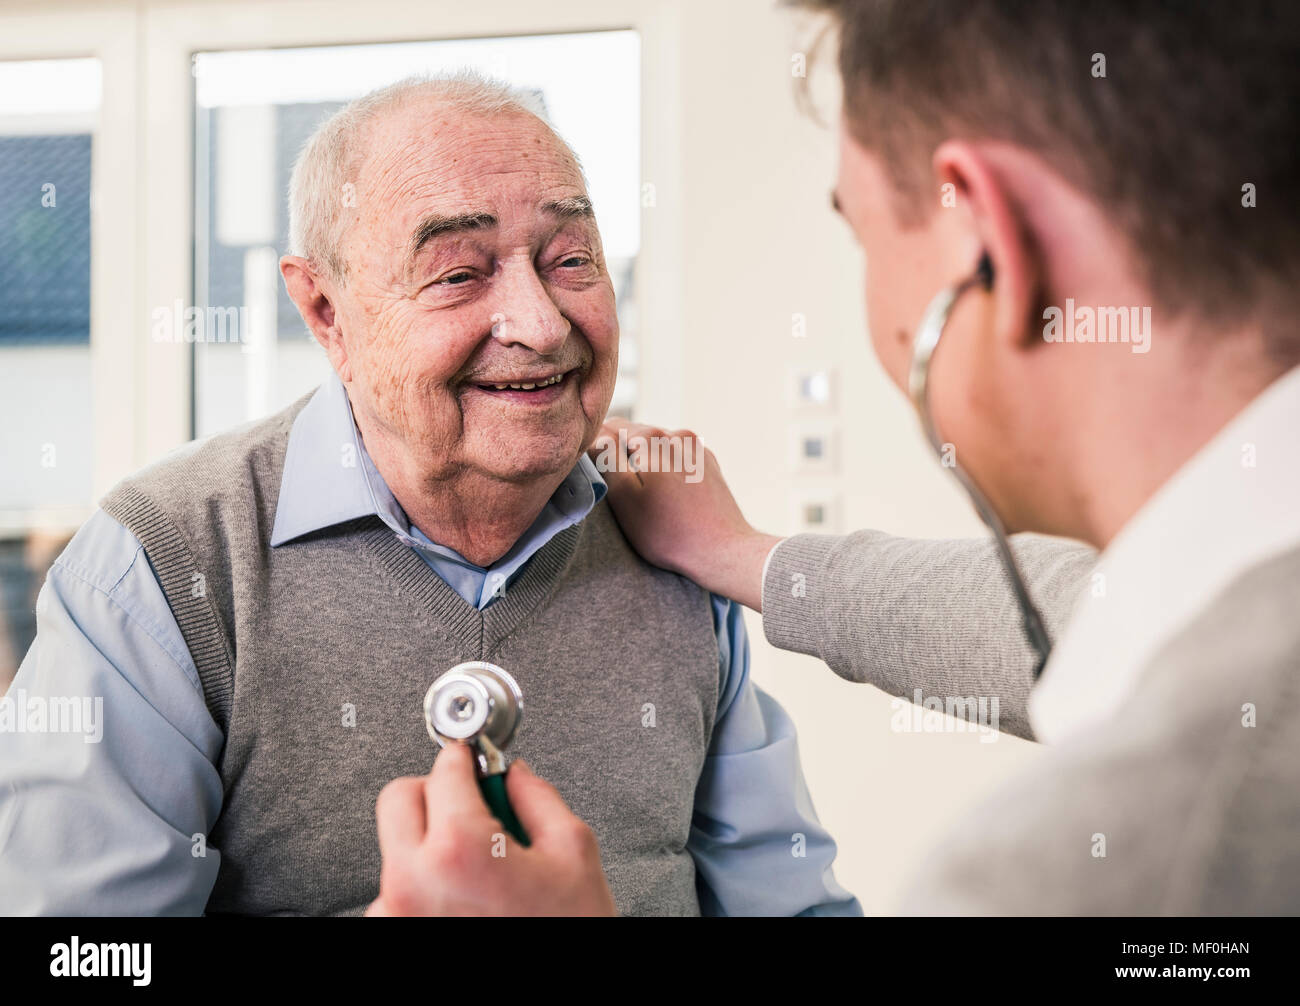 Senior man smiling at nurse with stethoscope at home Photo Stock